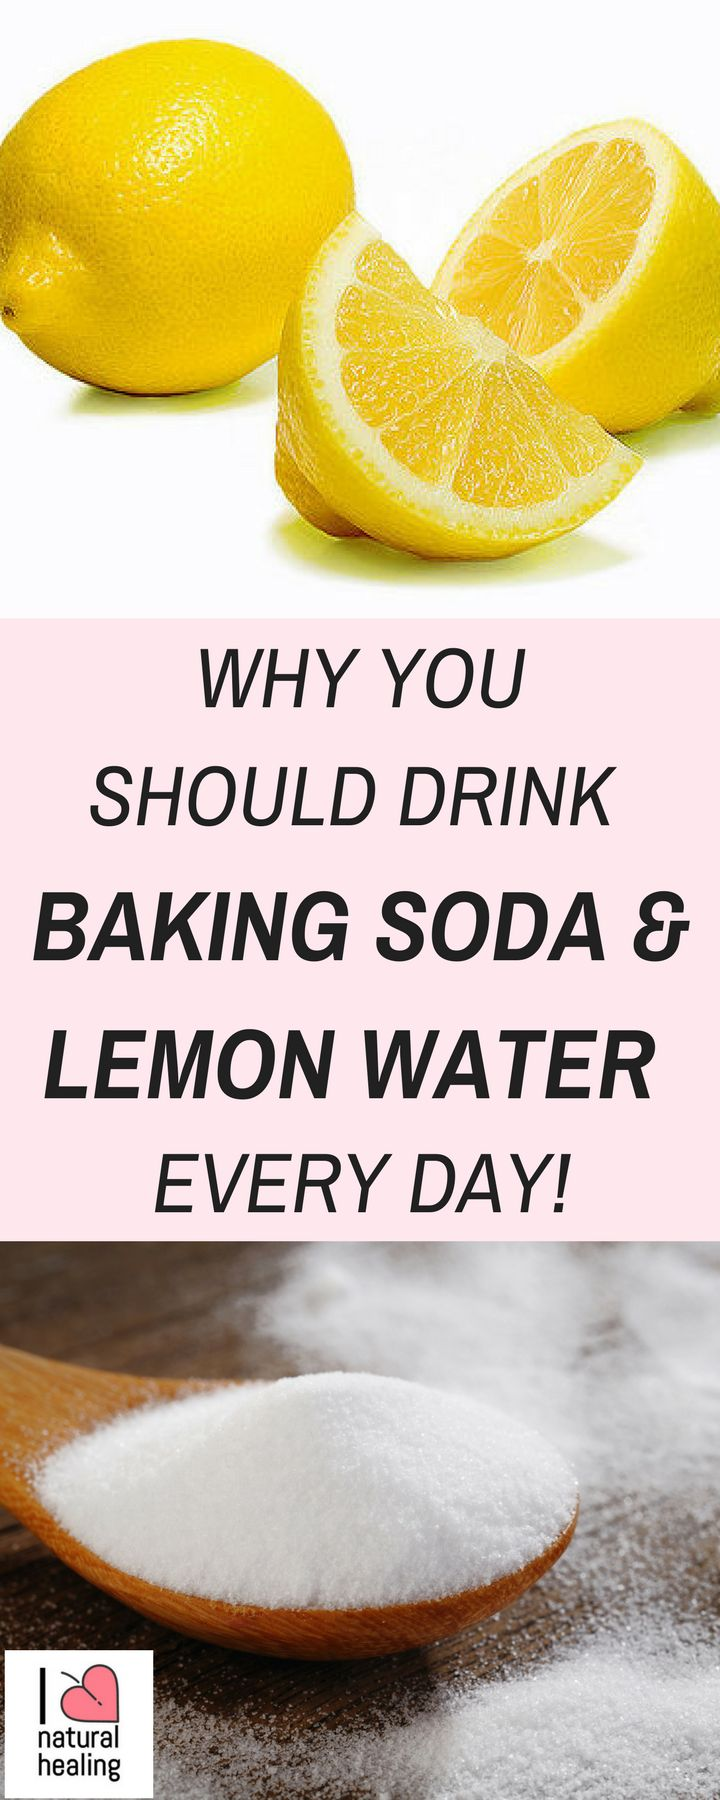 this is why you should drink baking soda u0026 lemon water every day